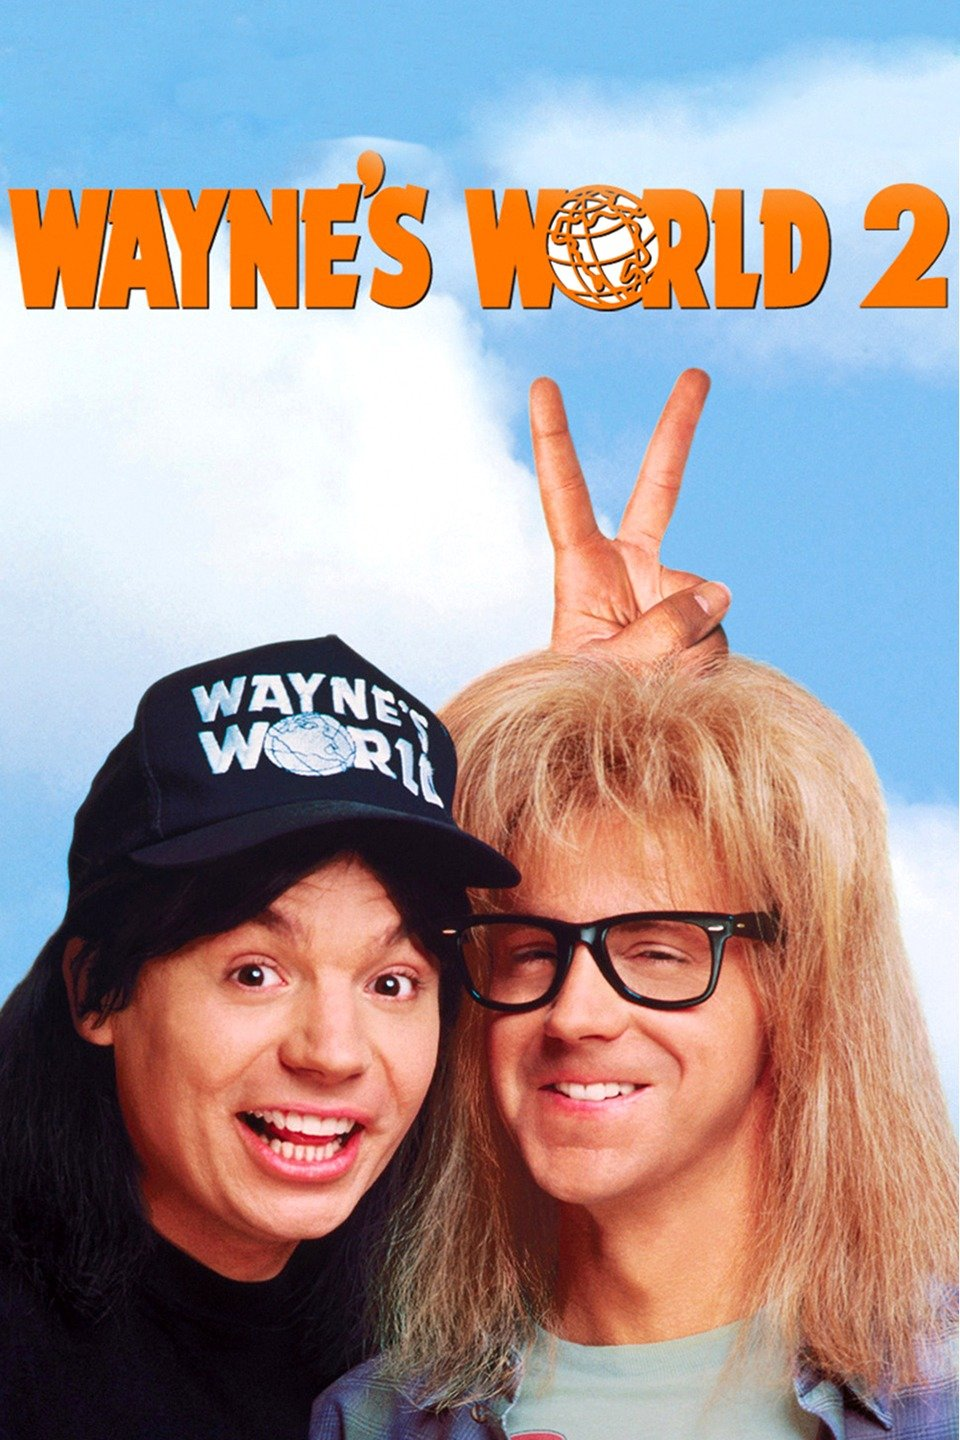 Wayne's World 2 (1993)